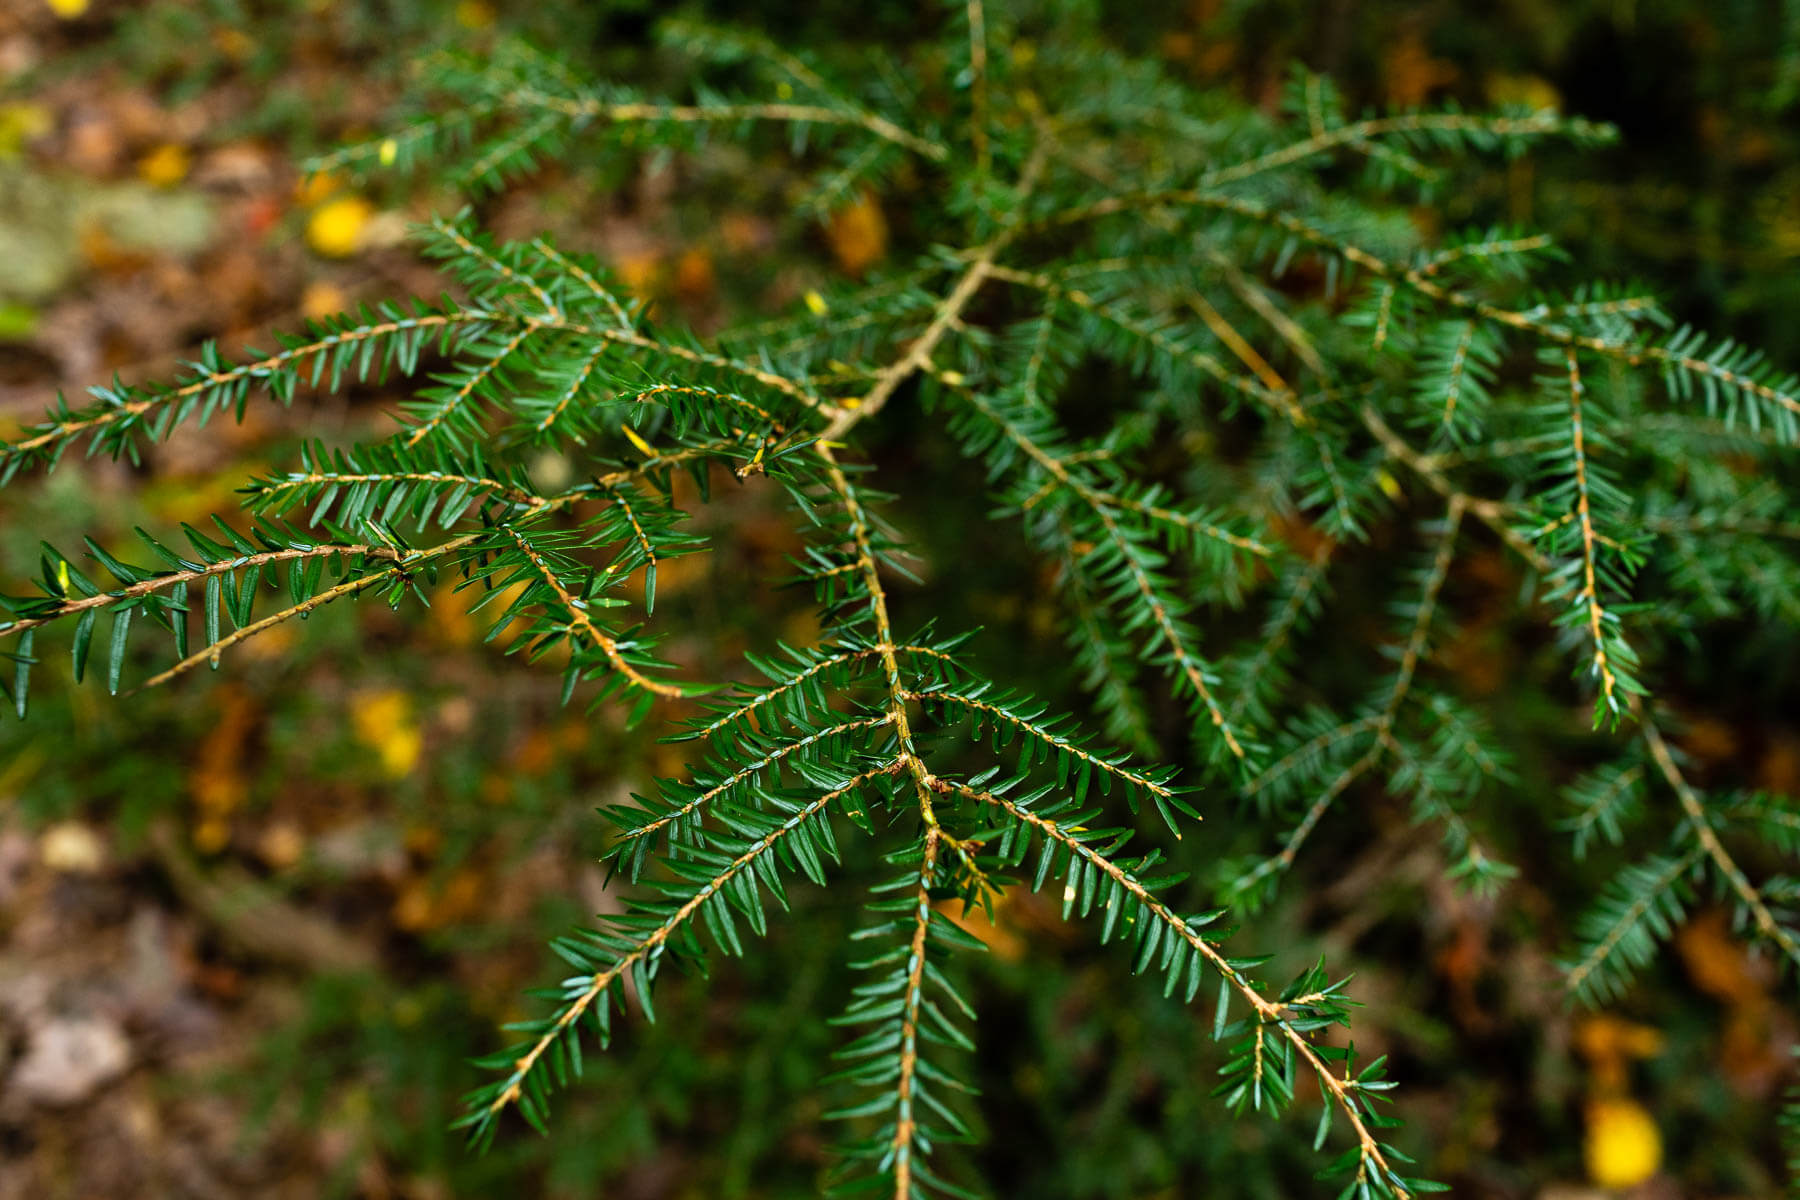 A hemlock branch with green needles